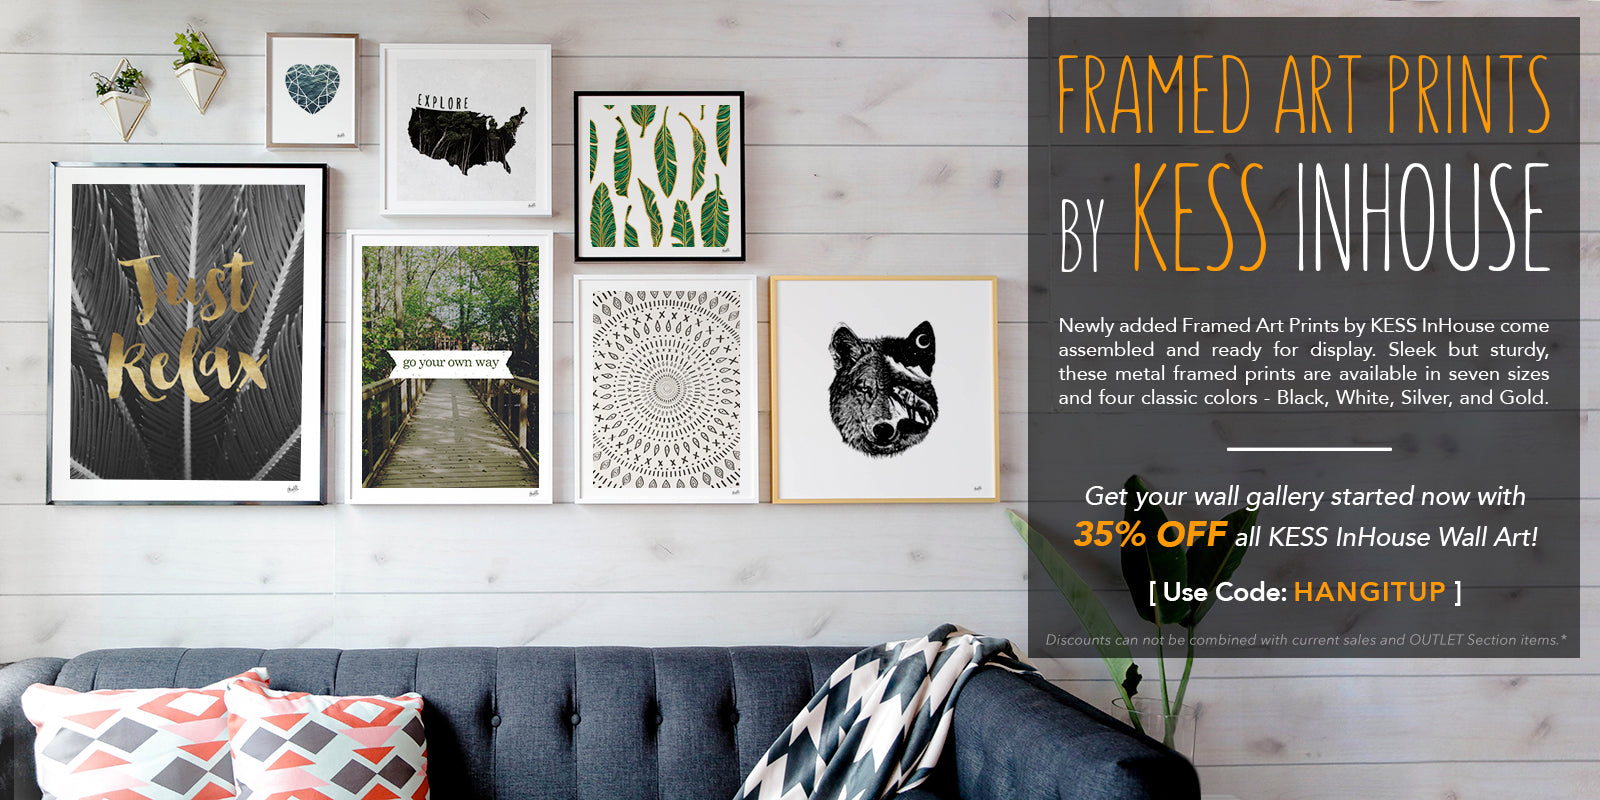 Framed Art Prints | KESS InHouse